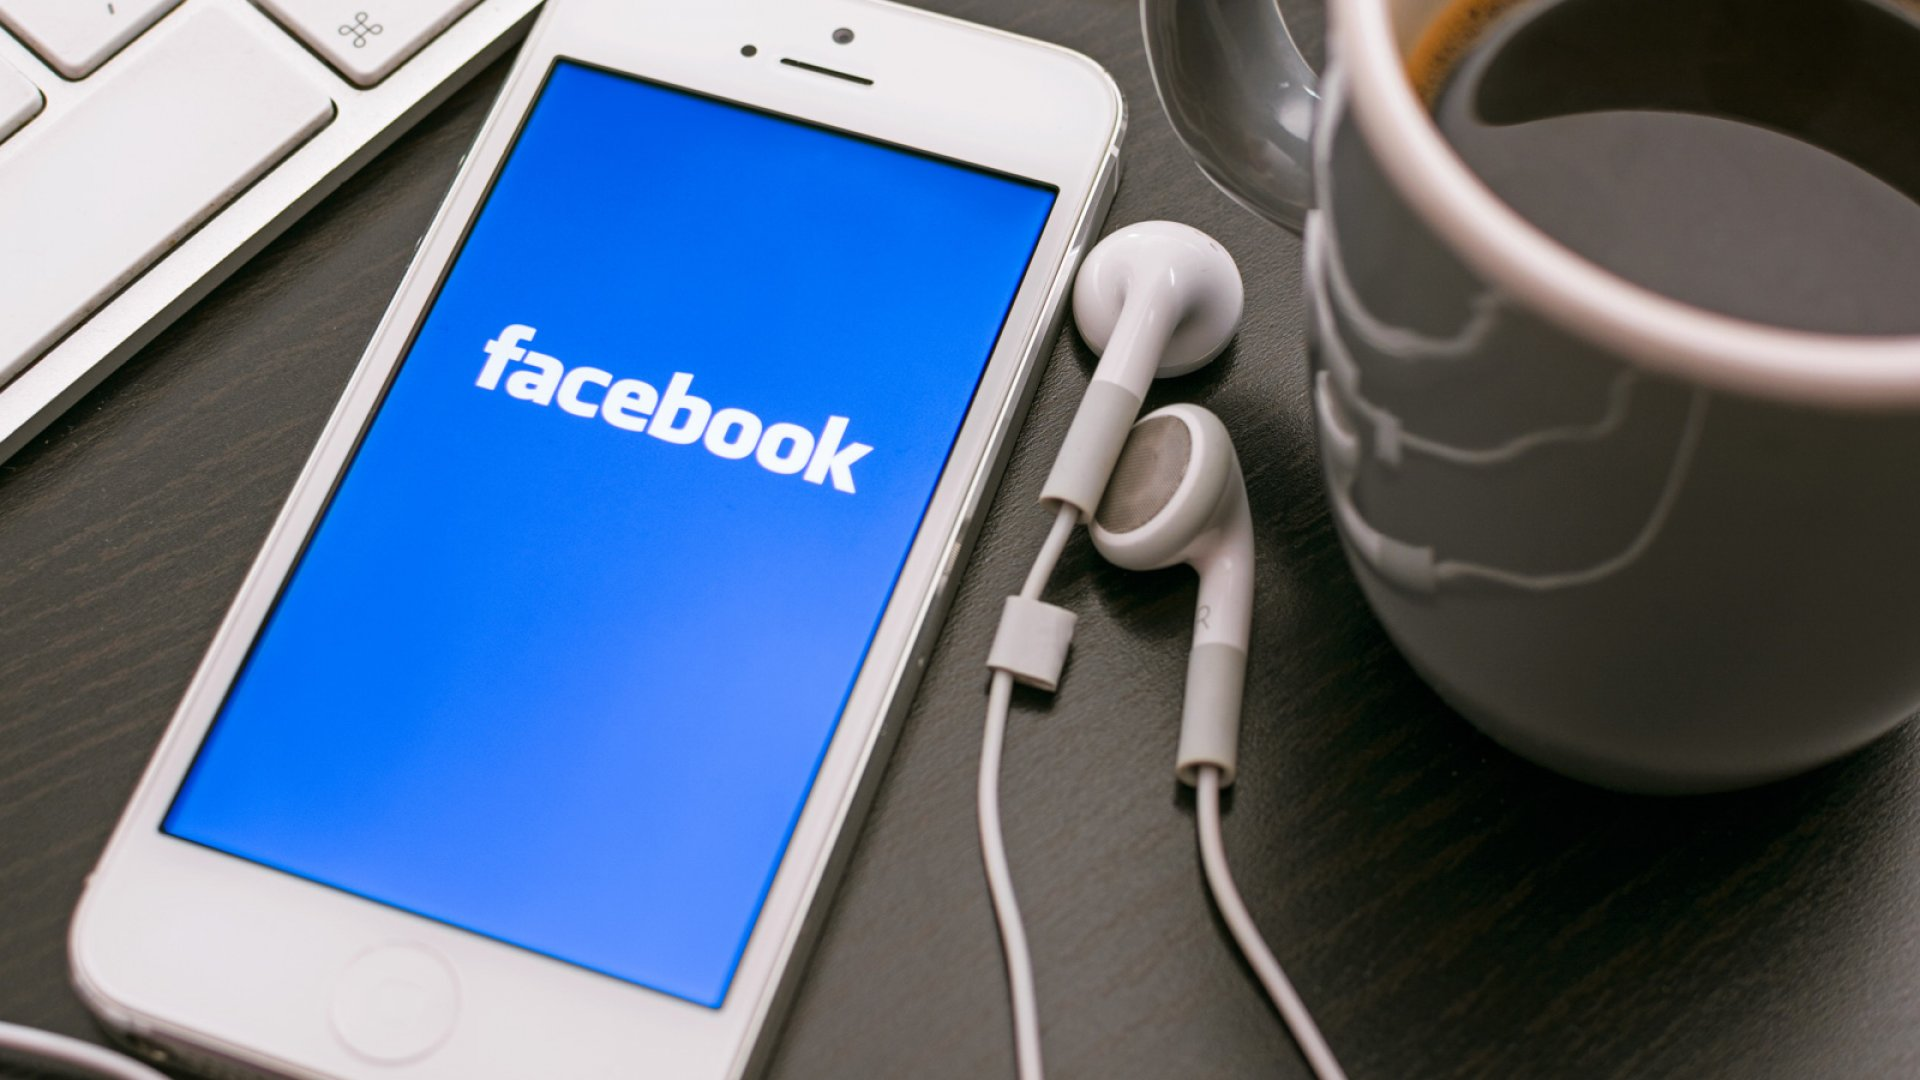 The Best Social Media Site for Reaching Teens? Facebook Still Rules